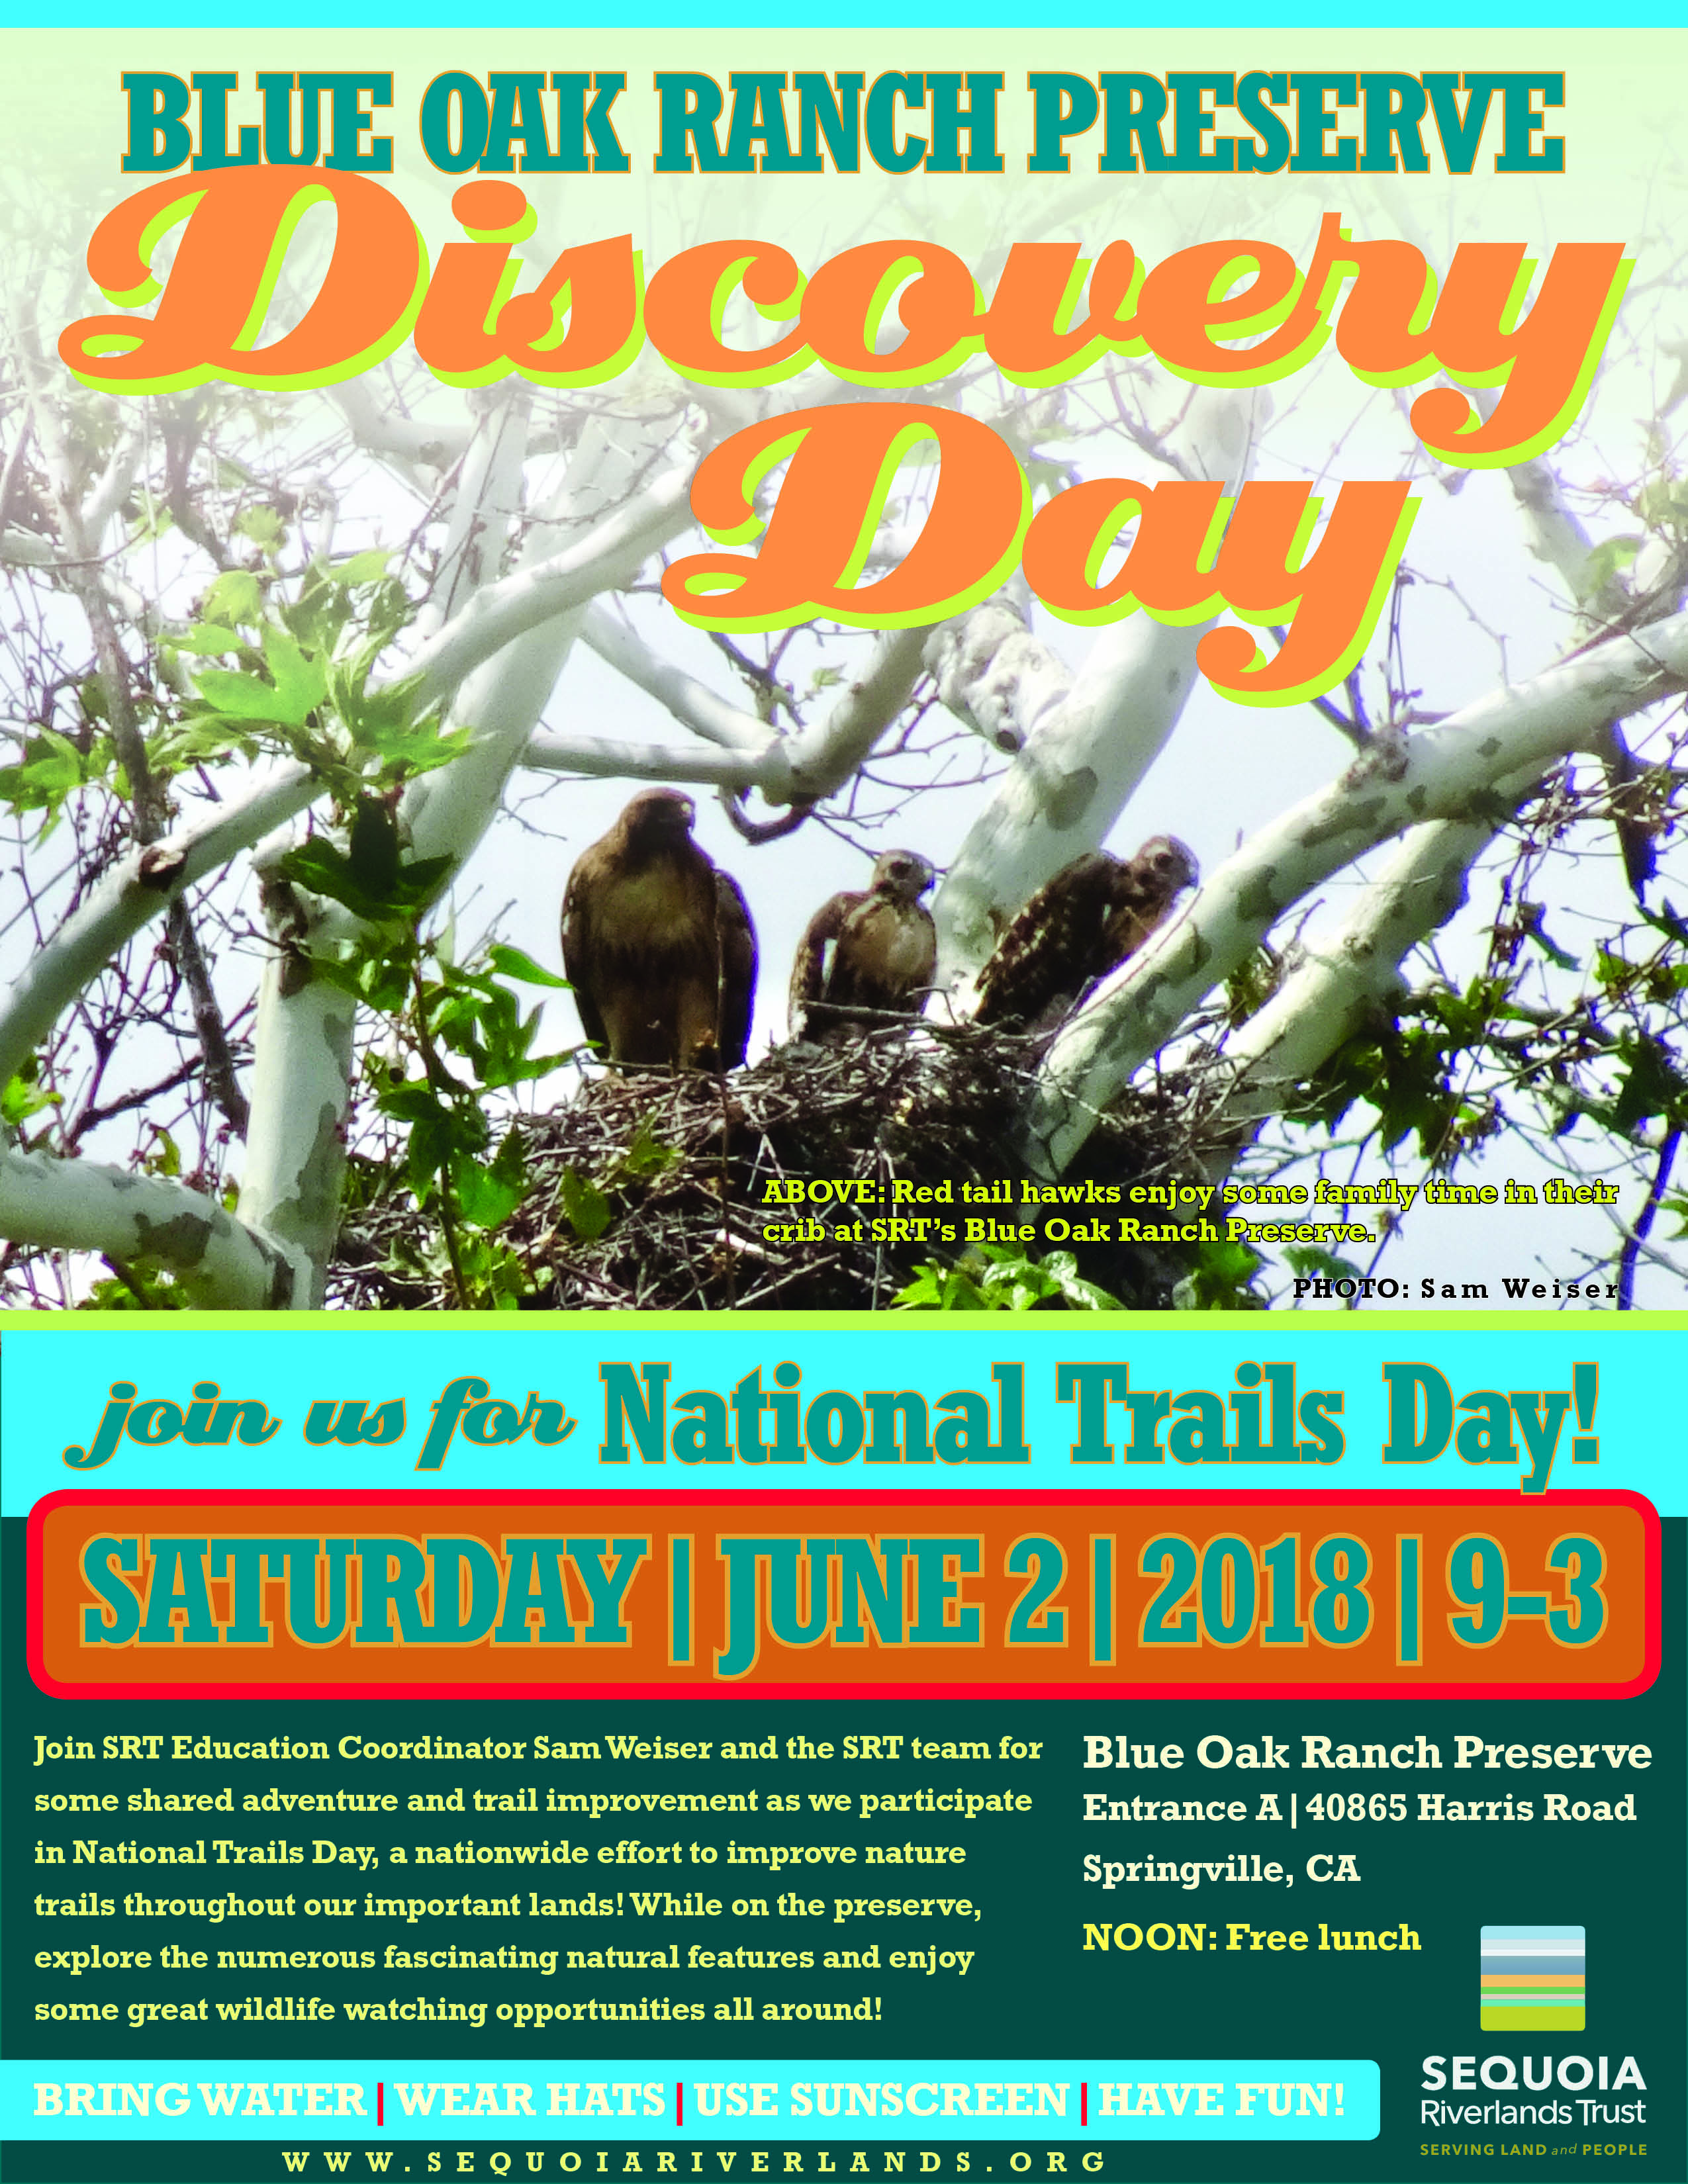 Final Blue Oak Discovery Day this Saturday 6-2-18